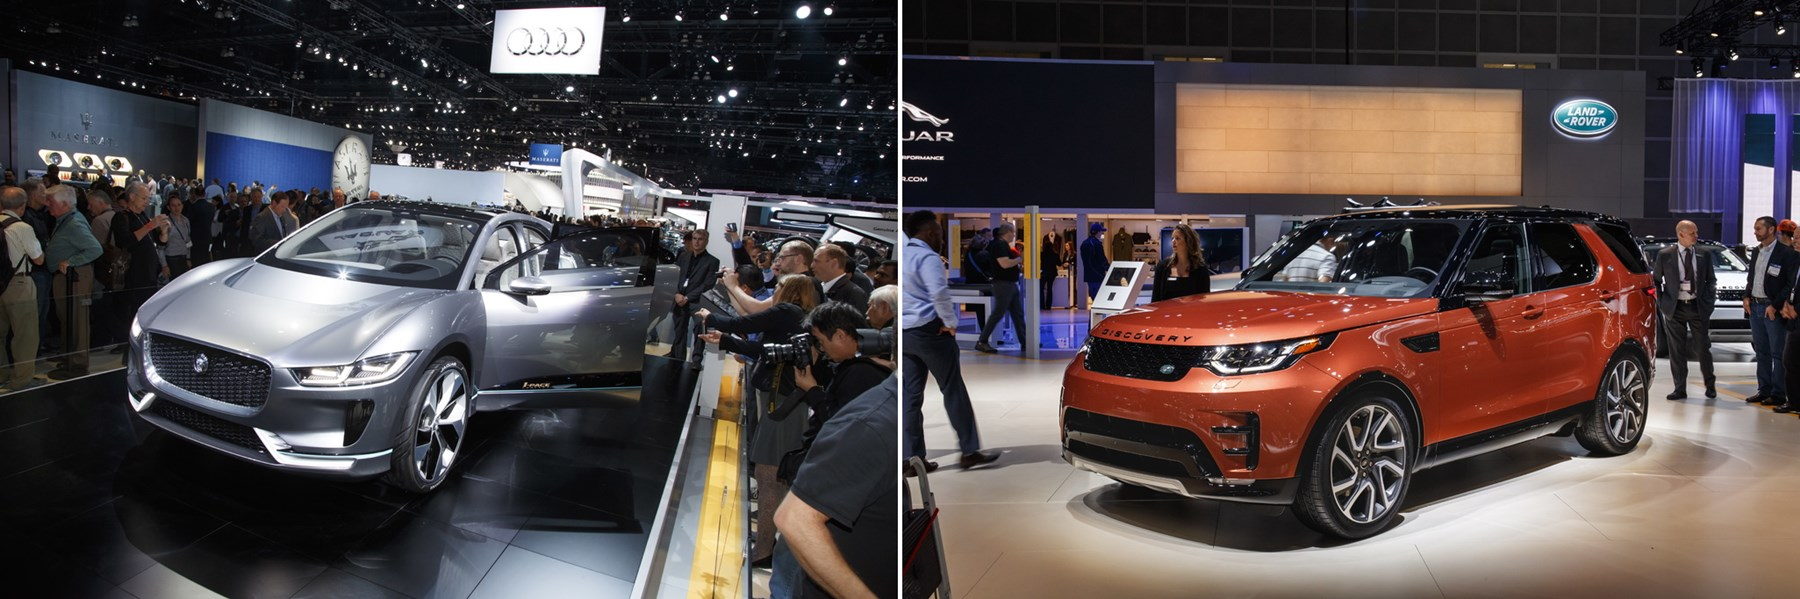 161128jaguar-ipace_landrover-discovery